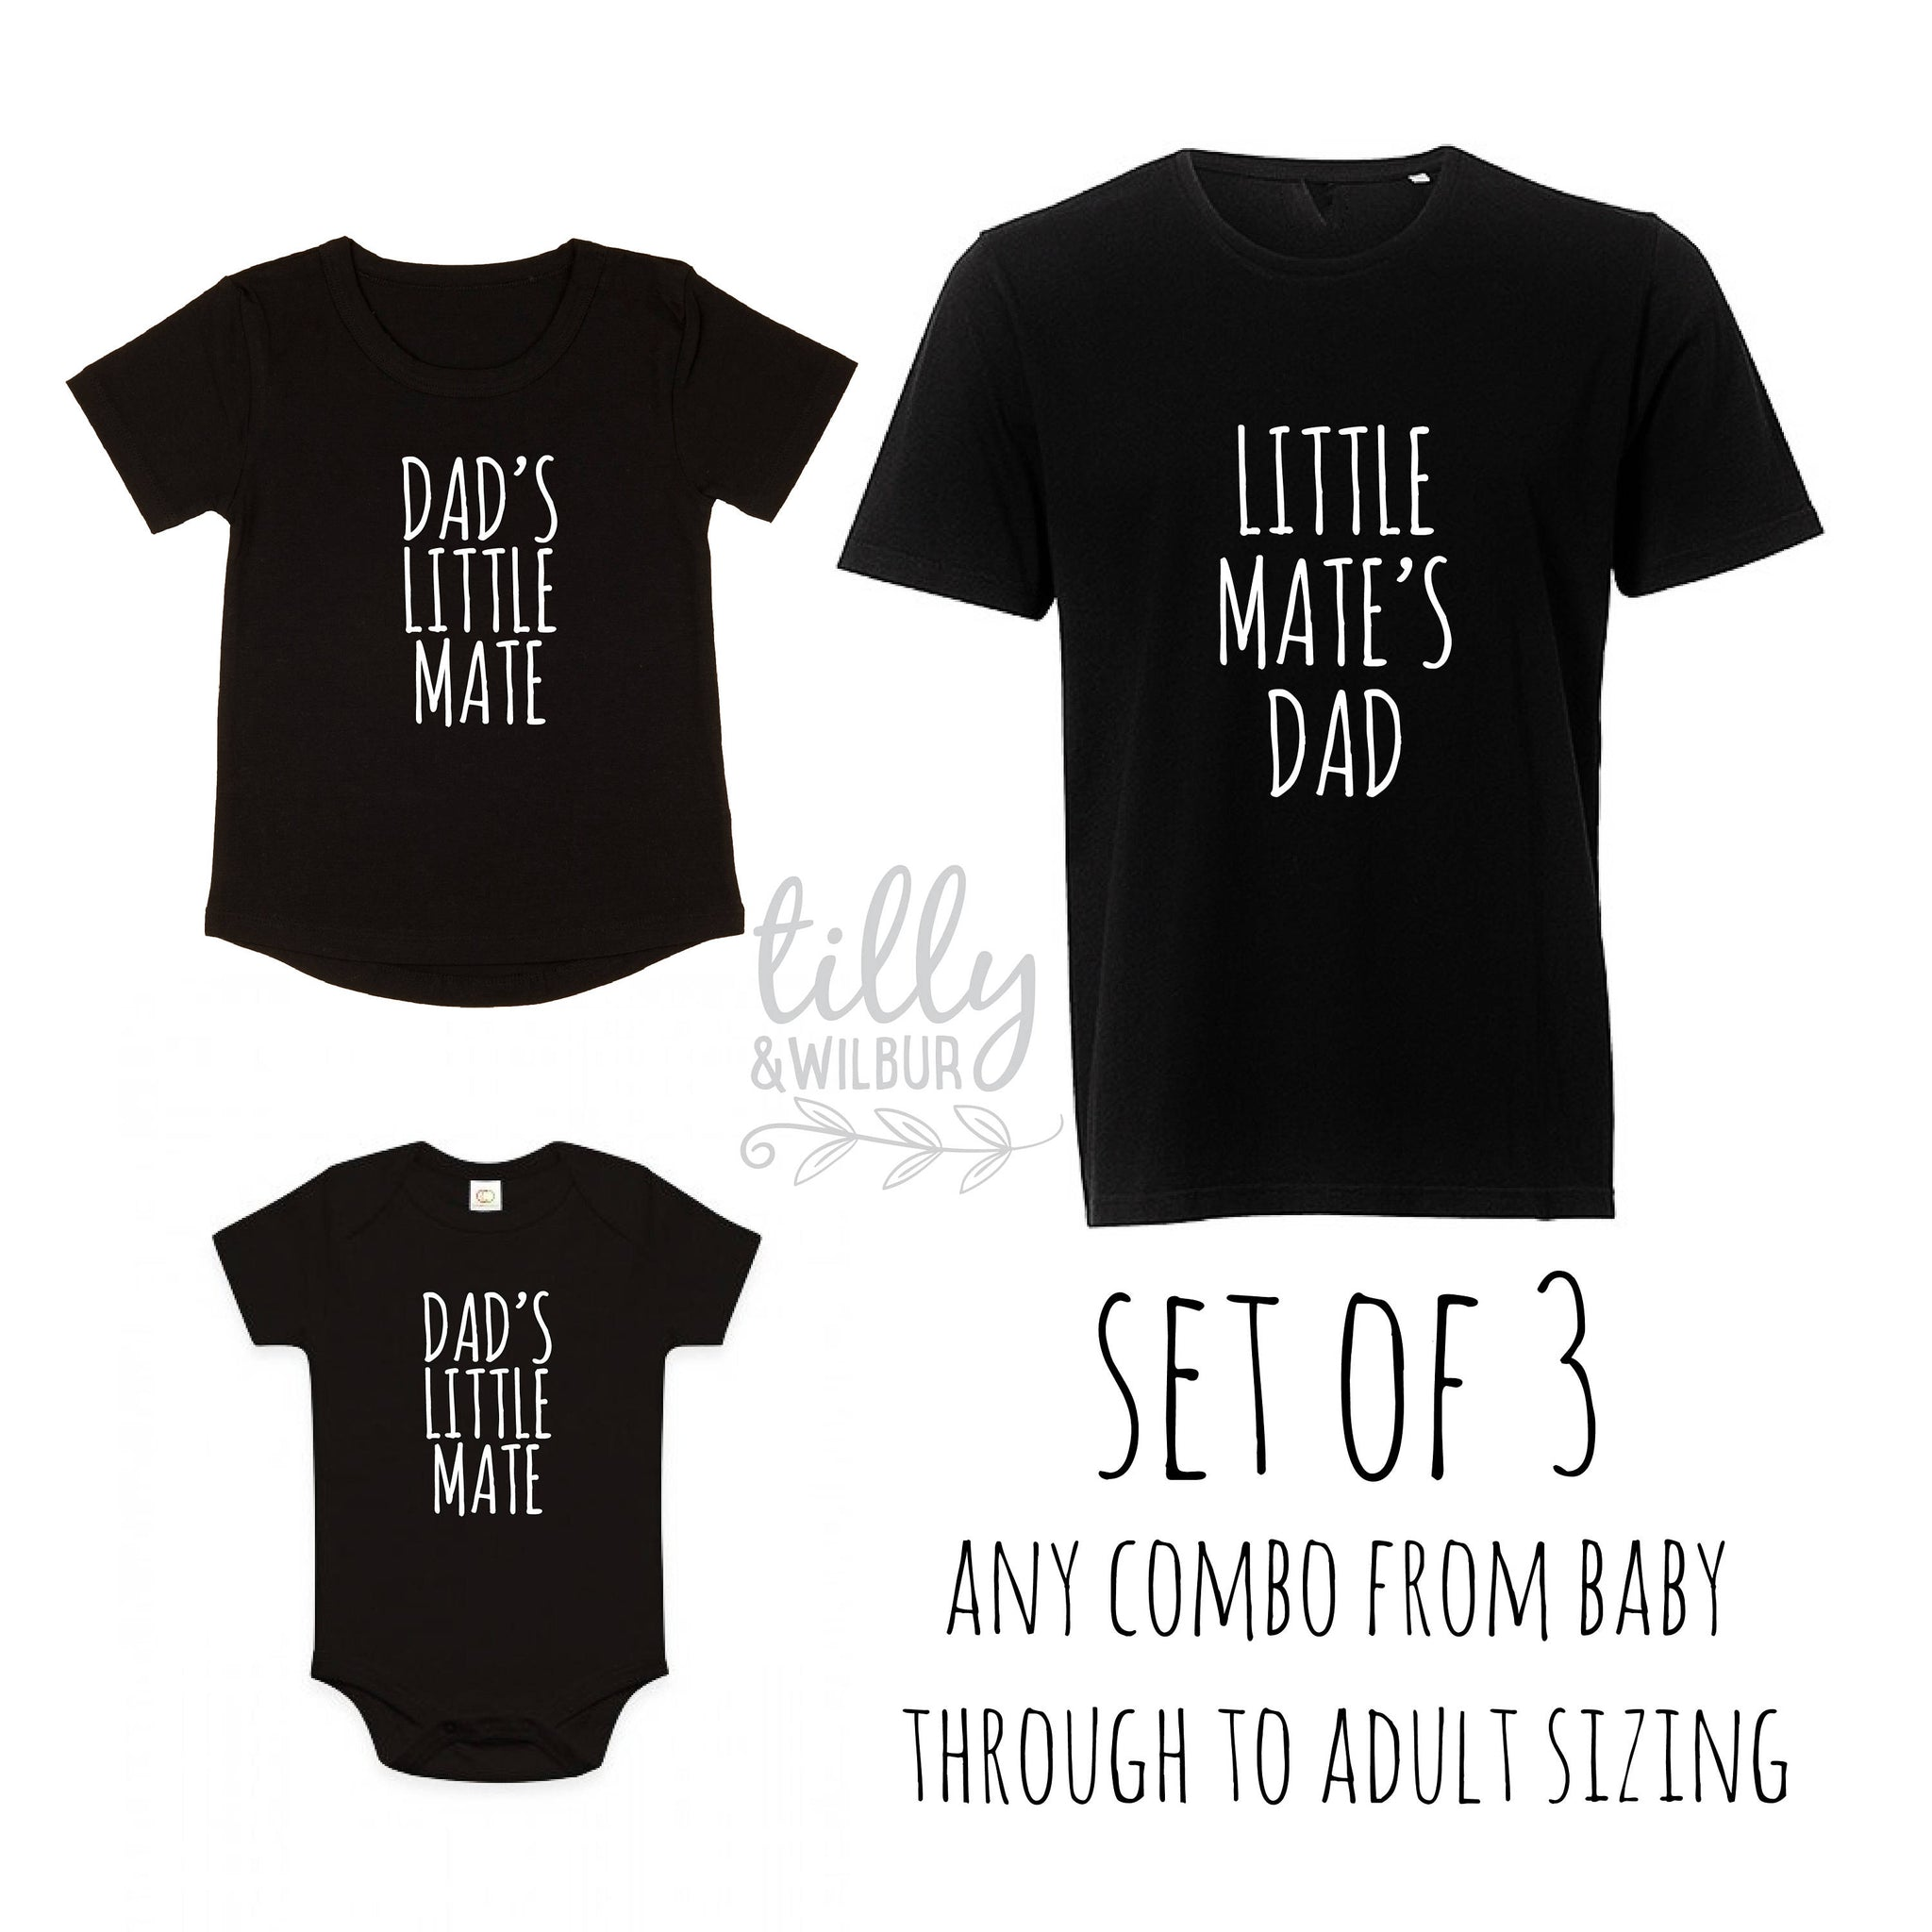 ddb5da5c Father's Day Shirts, Father Son Matching Shirts, Dad's Little Mate, Little  Mate's Dad